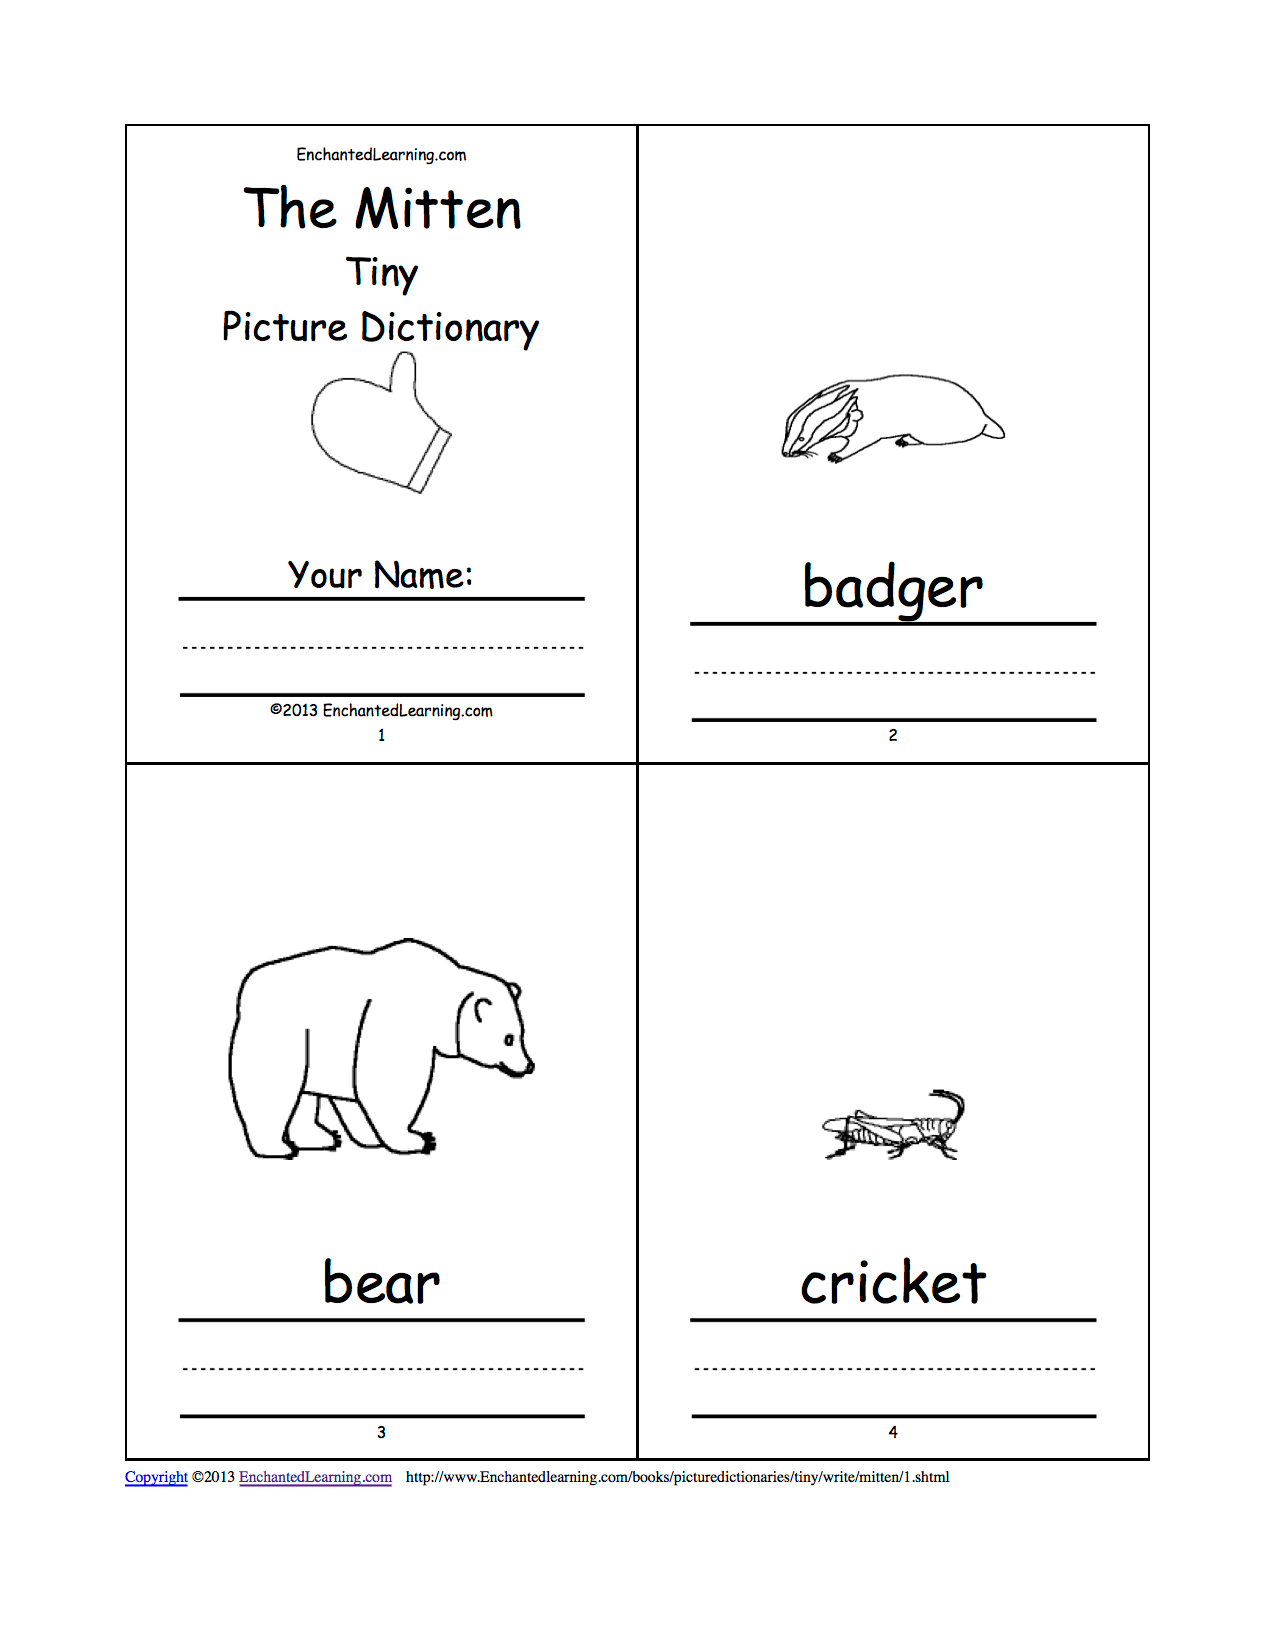 The Mitten Tiny Picture Dictionary